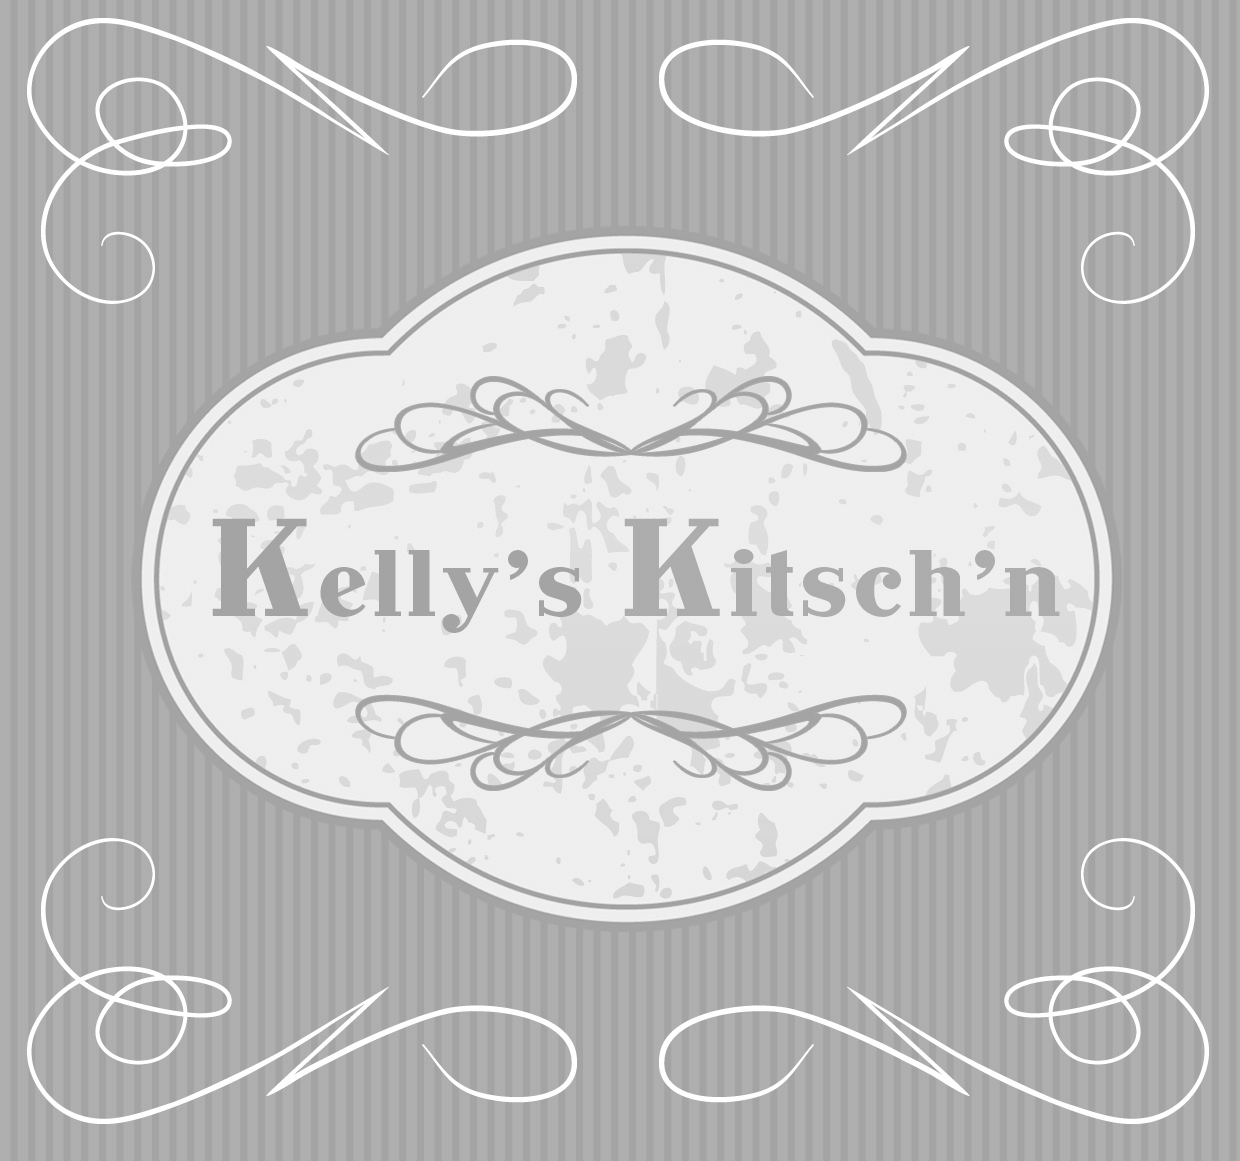 Logo Design by Private User - Entry No. 83 in the Logo Design Contest Unique Logo Design Wanted for Kelly's Kitsch'n.